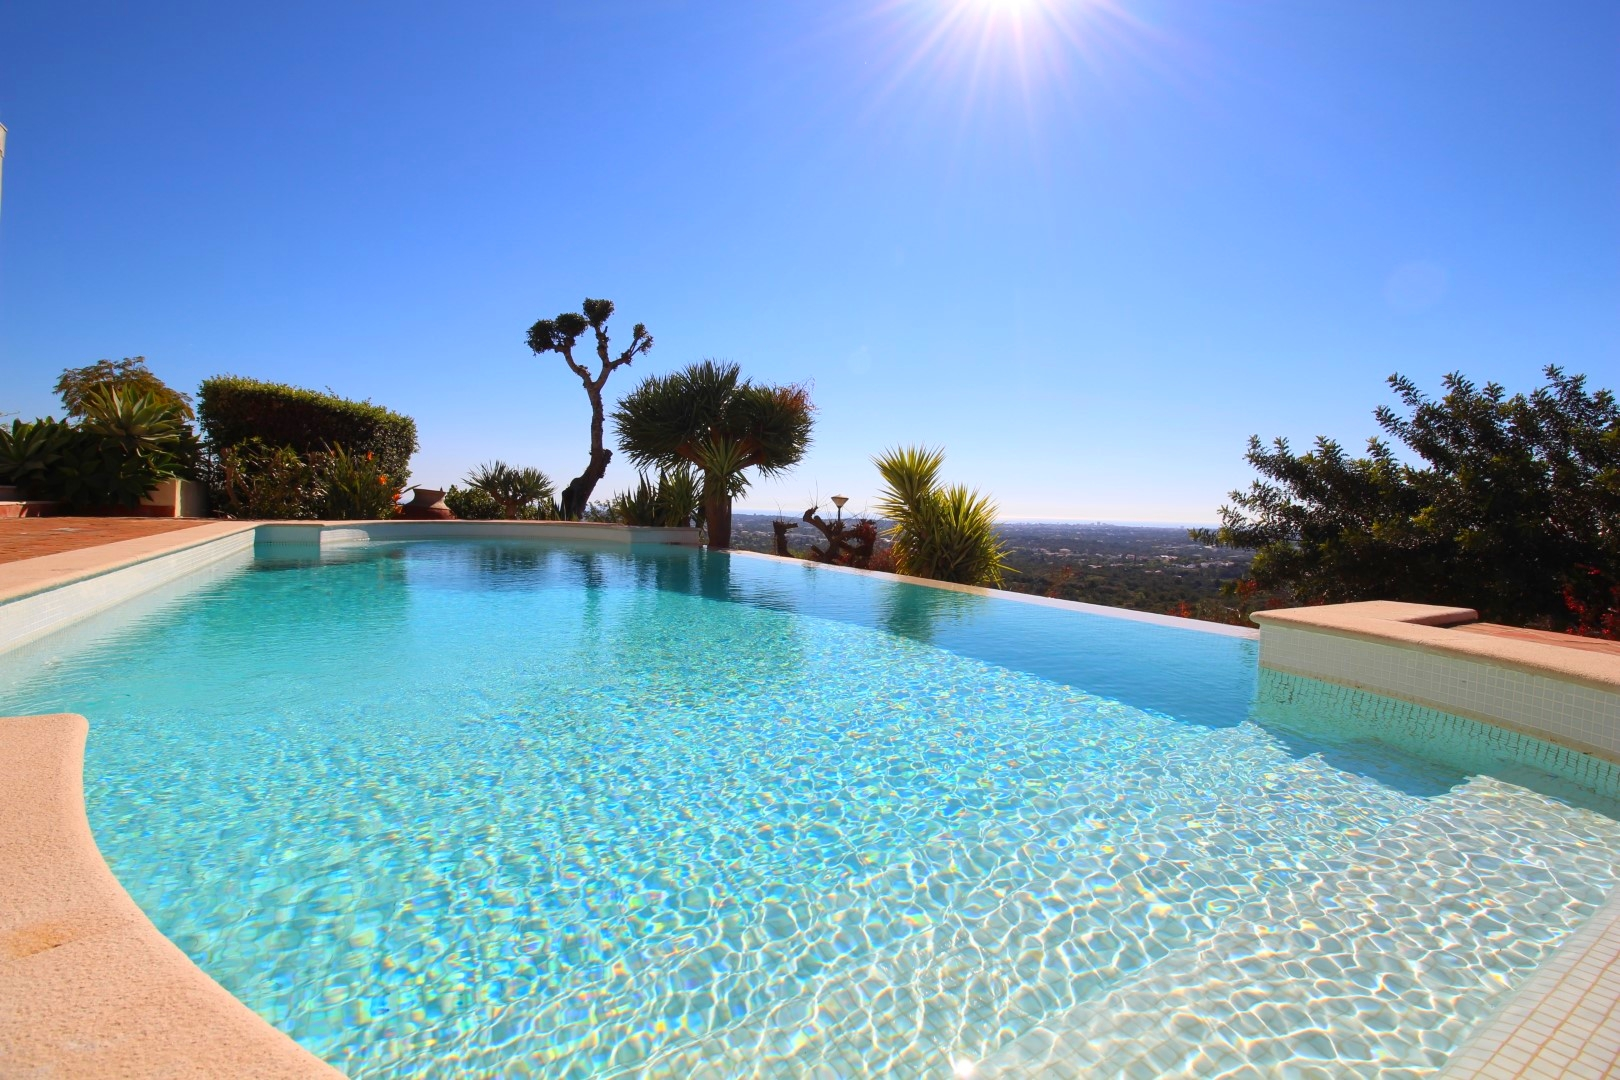 Luxury 5 bedroom Villa with Stunning Views for Long Term Rental in the Hills of the Golden Triangle